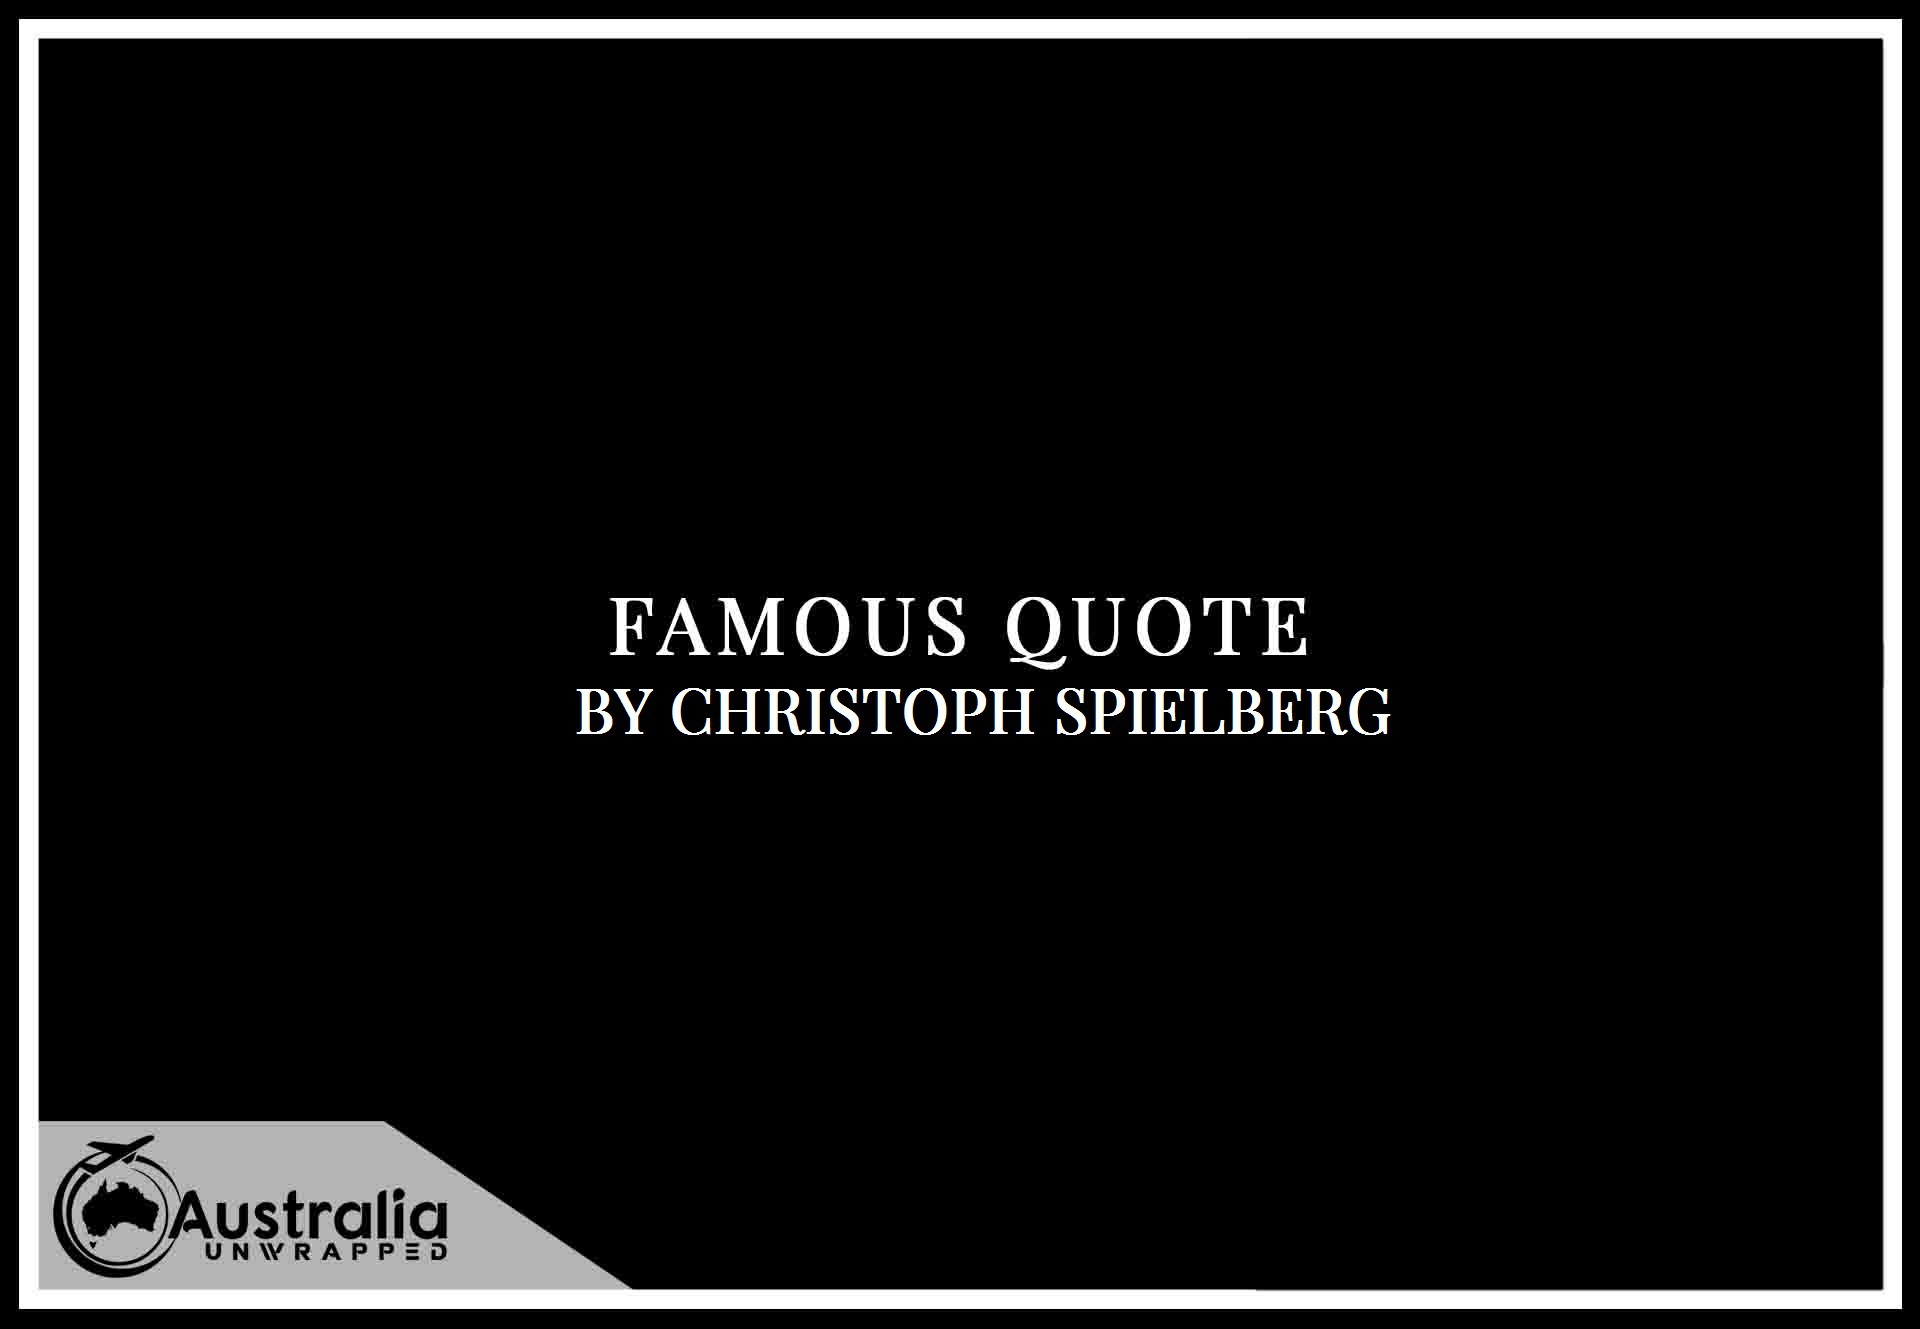 Christoph Spielberg's Top 1 Popular and Famous Quotes